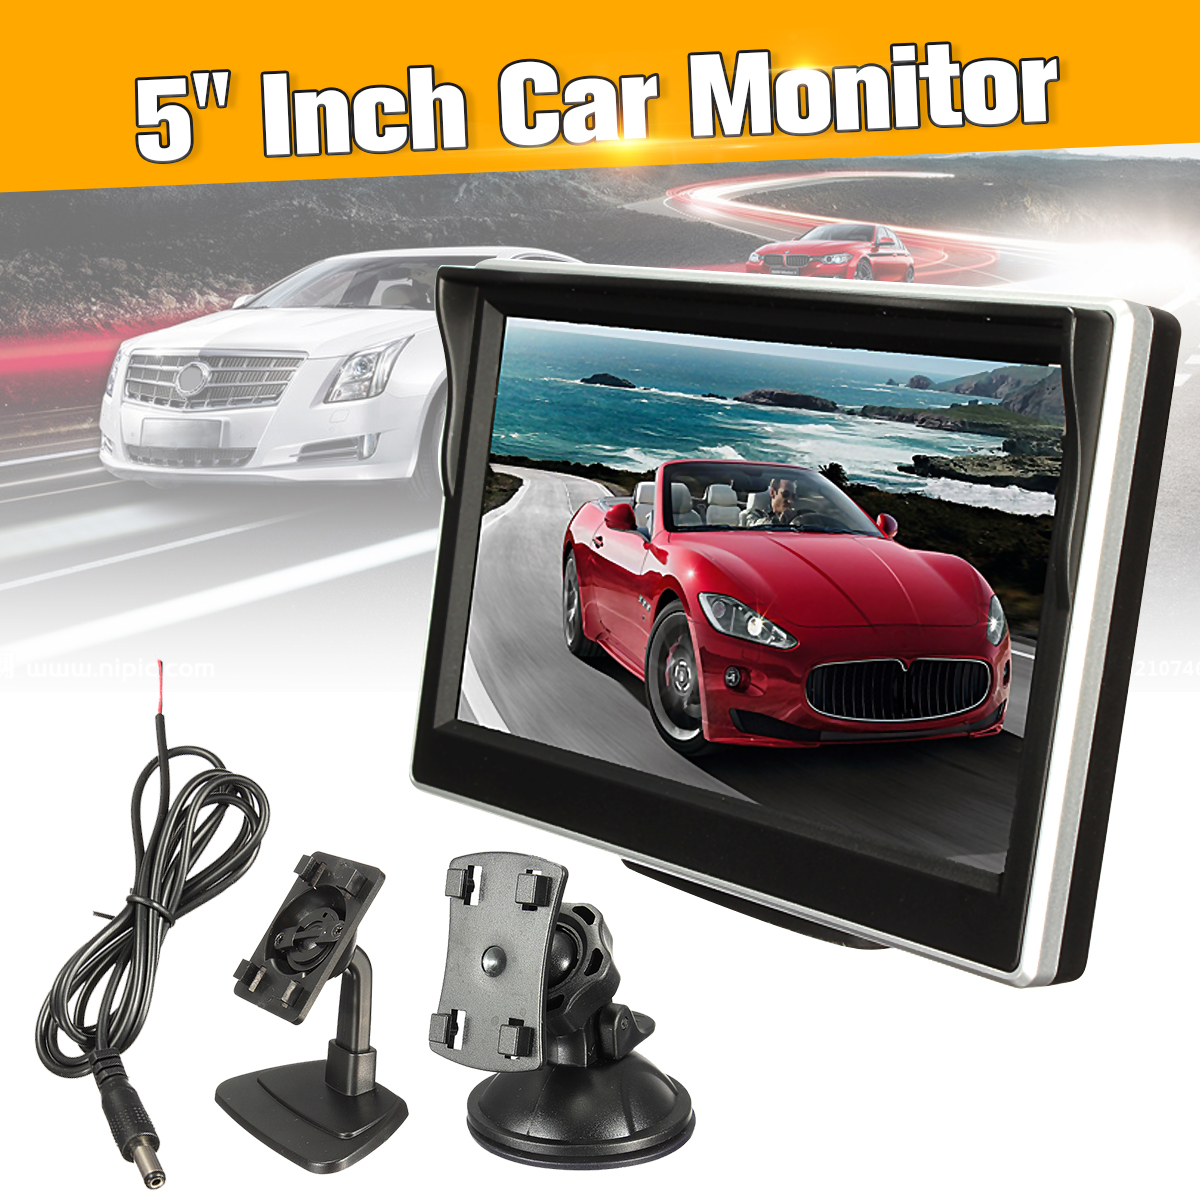 Universal 5 Zoll TFT LCD Display <font><b>Auto</b></font>-<font><b>Monitor</b></font> Rückansicht Backup-Reverse Spiegel <font><b>Monitor</b></font> <font><b>Auto</b></font> DVD Screen <font><b>Monitor</b></font> <font><b>Auto</b></font> TV image